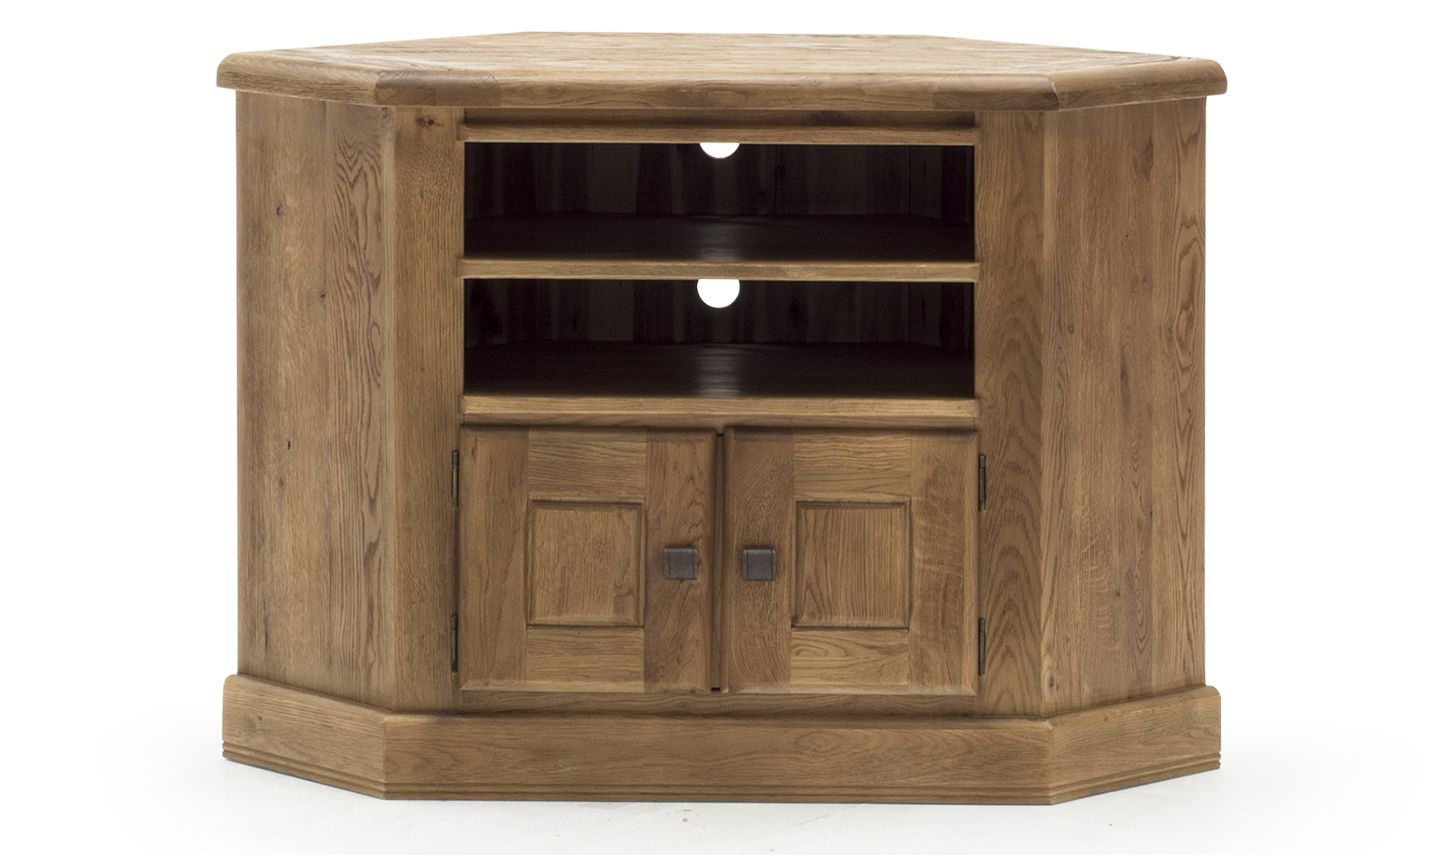 Sorrento Rustic Solid Oak Corner Tv Unit 18Vd364 Throughout Well Known Dark Wood Corner Tv Cabinets (Gallery 16 of 20)